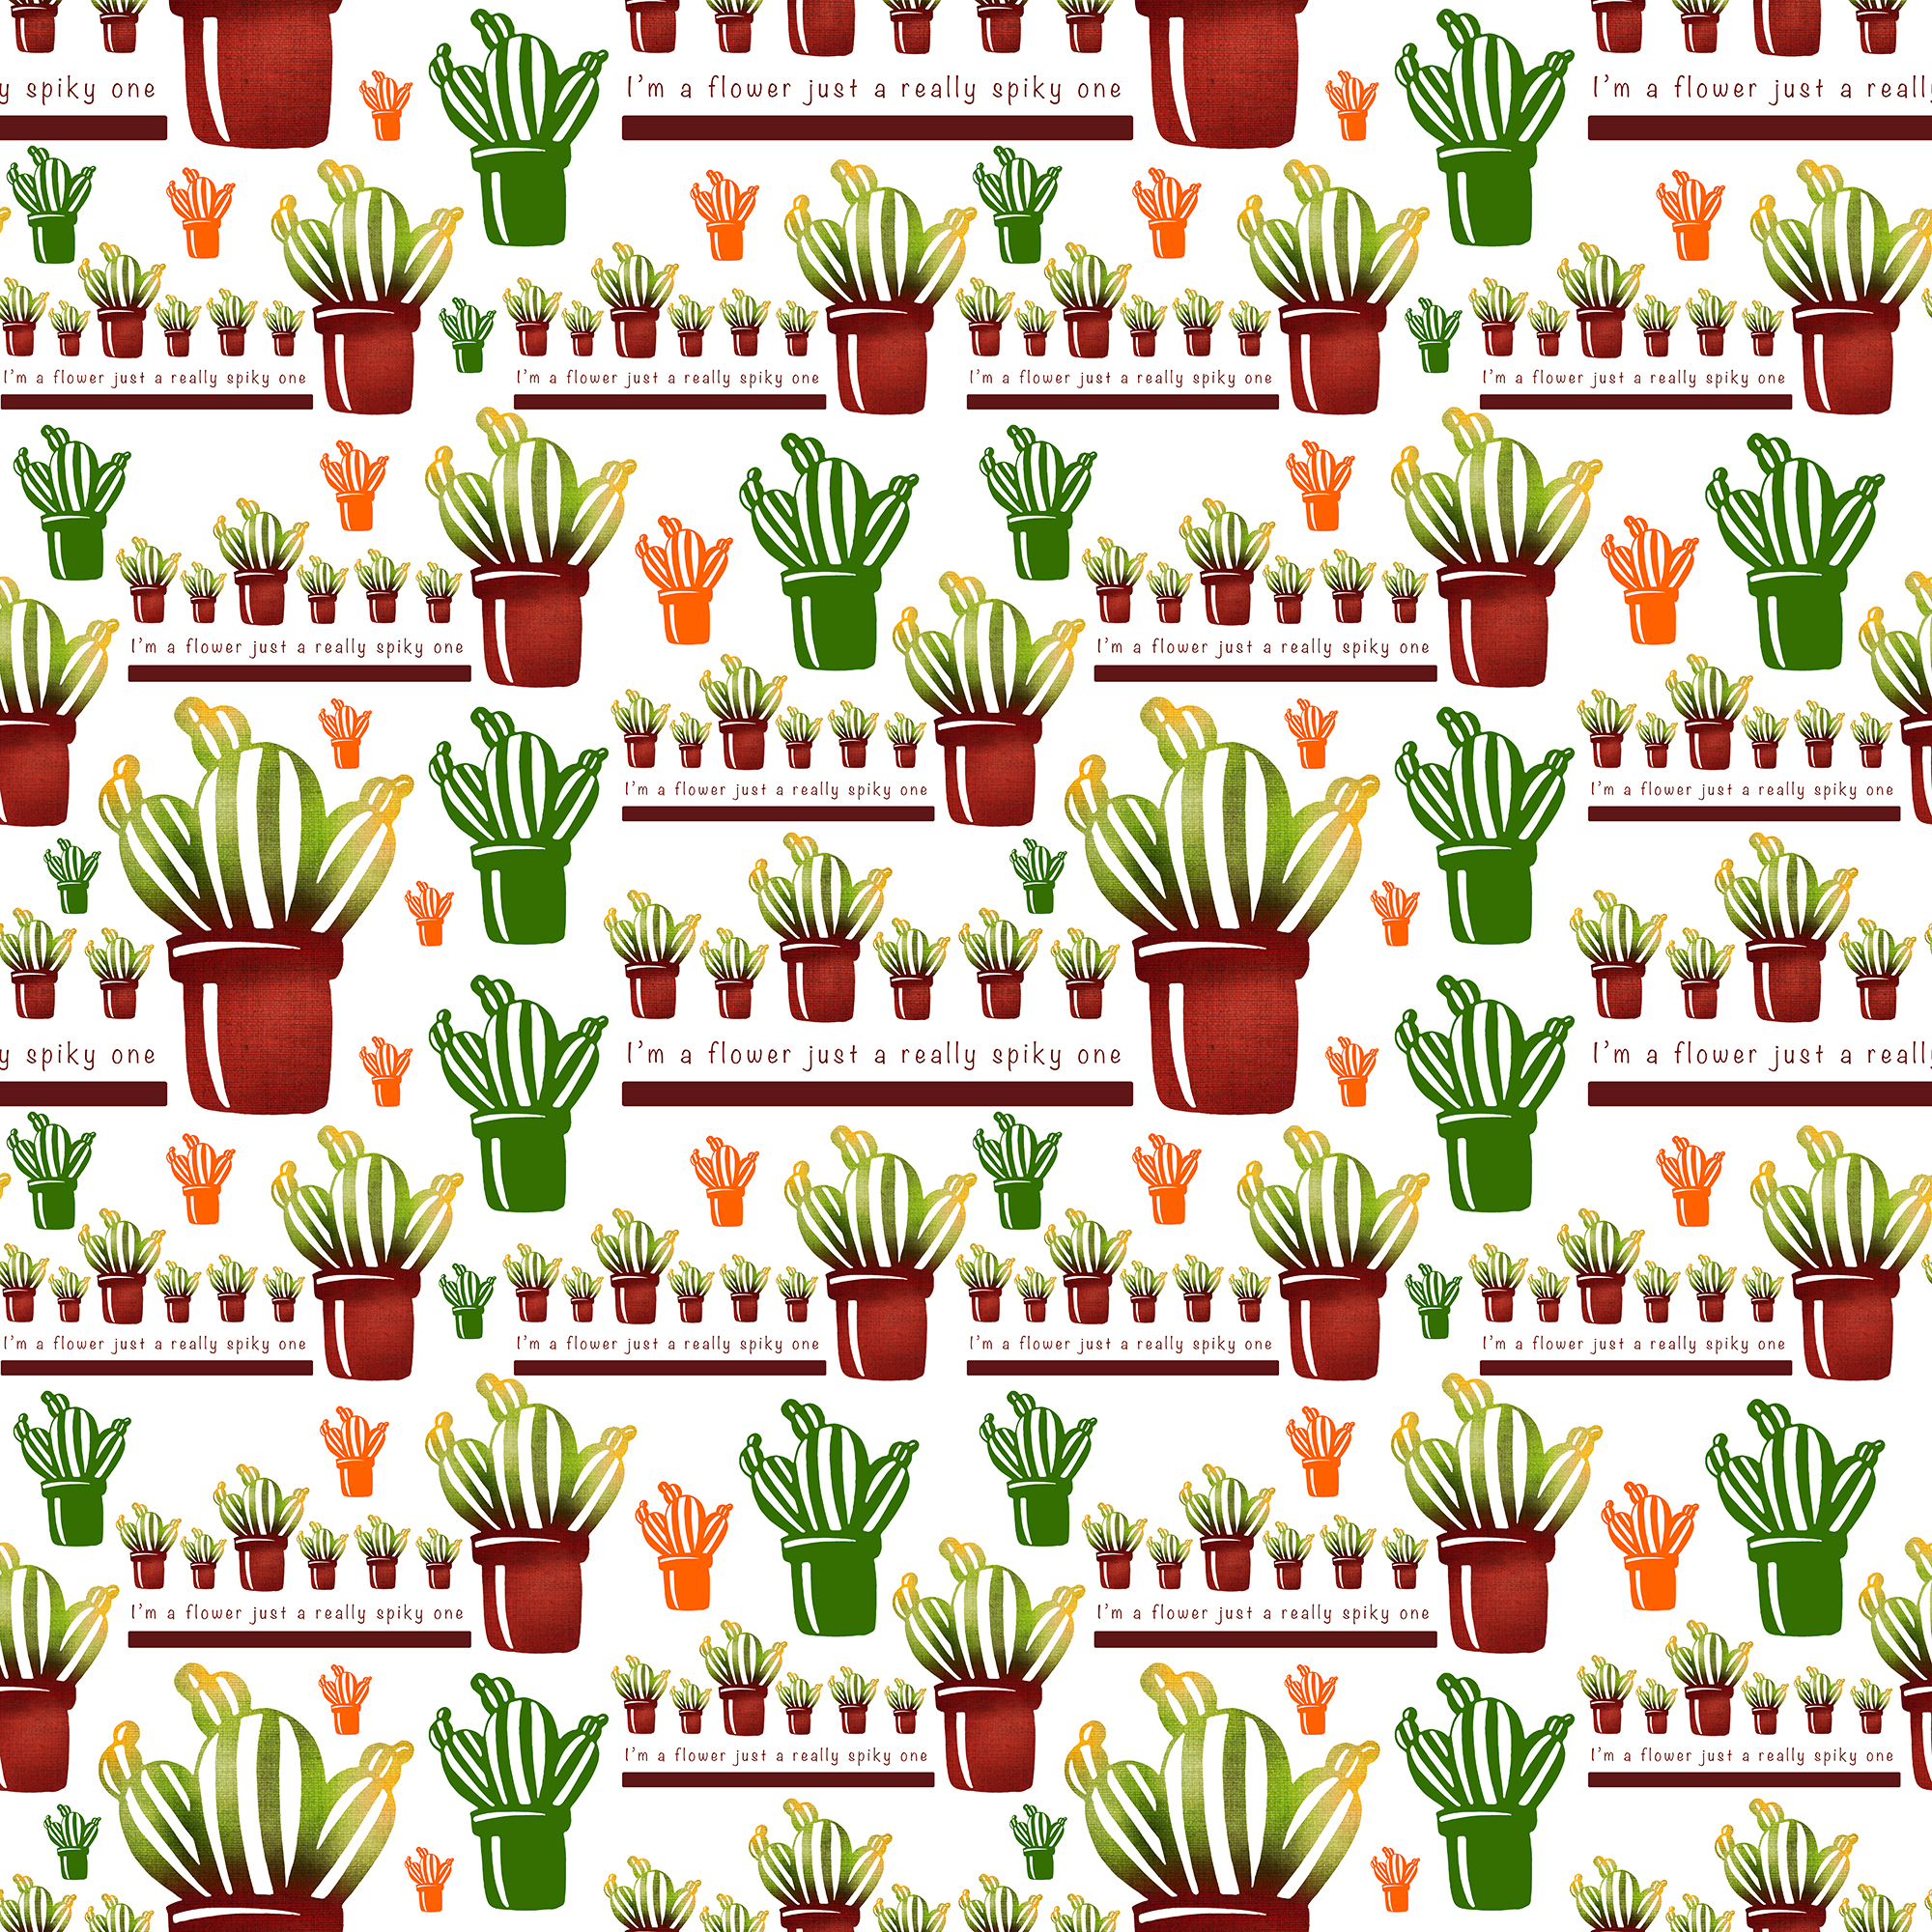 I'm a flower just a really spiky one! - repeat pattern